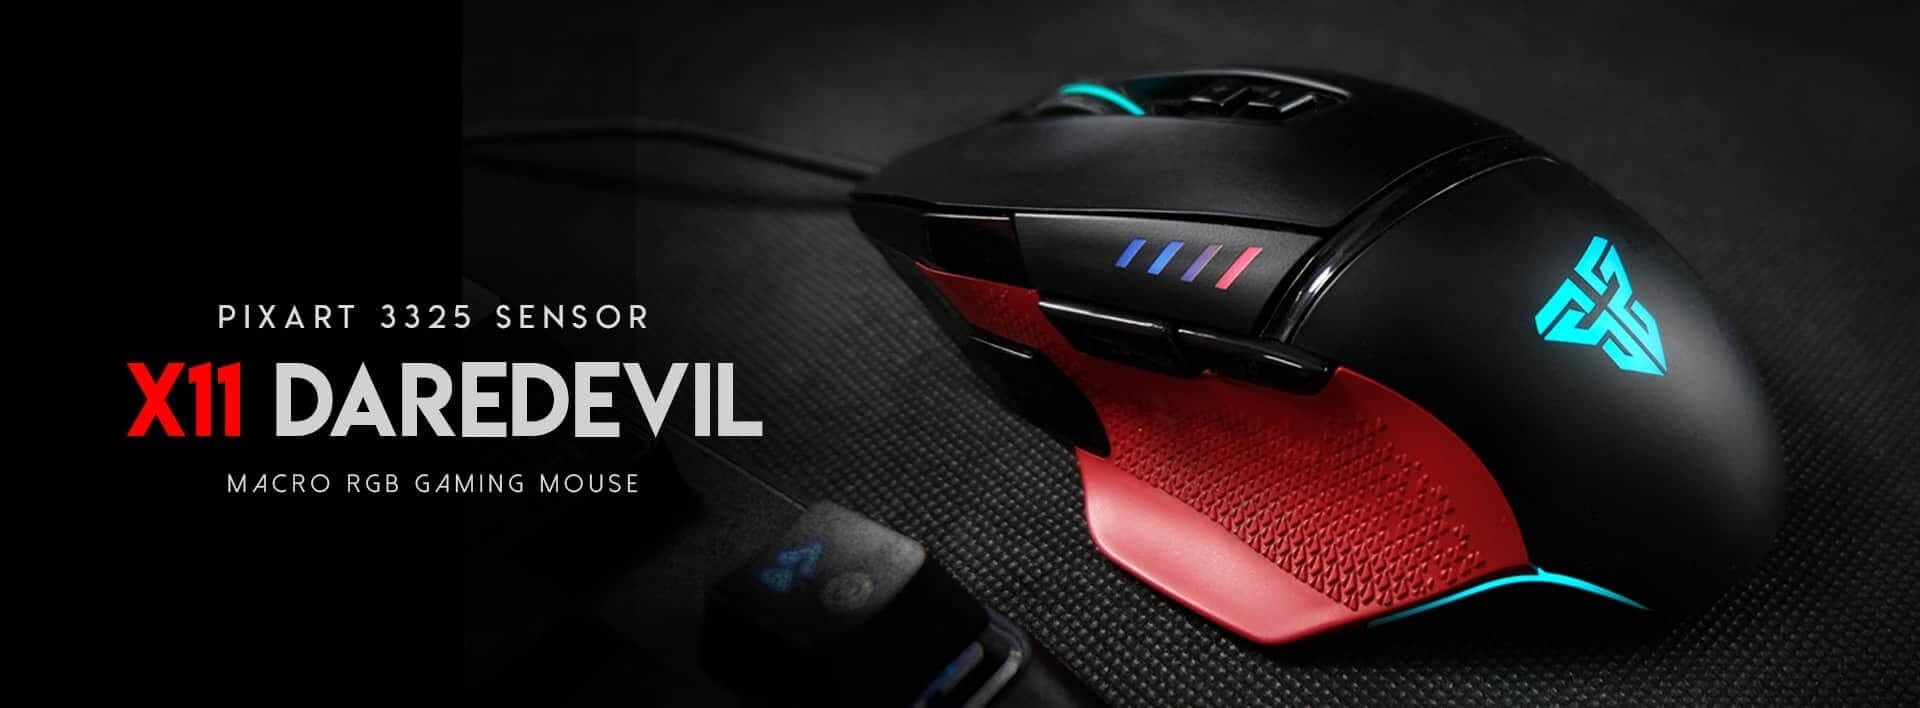 X11 DAREDEVIL GAMING MOUSE